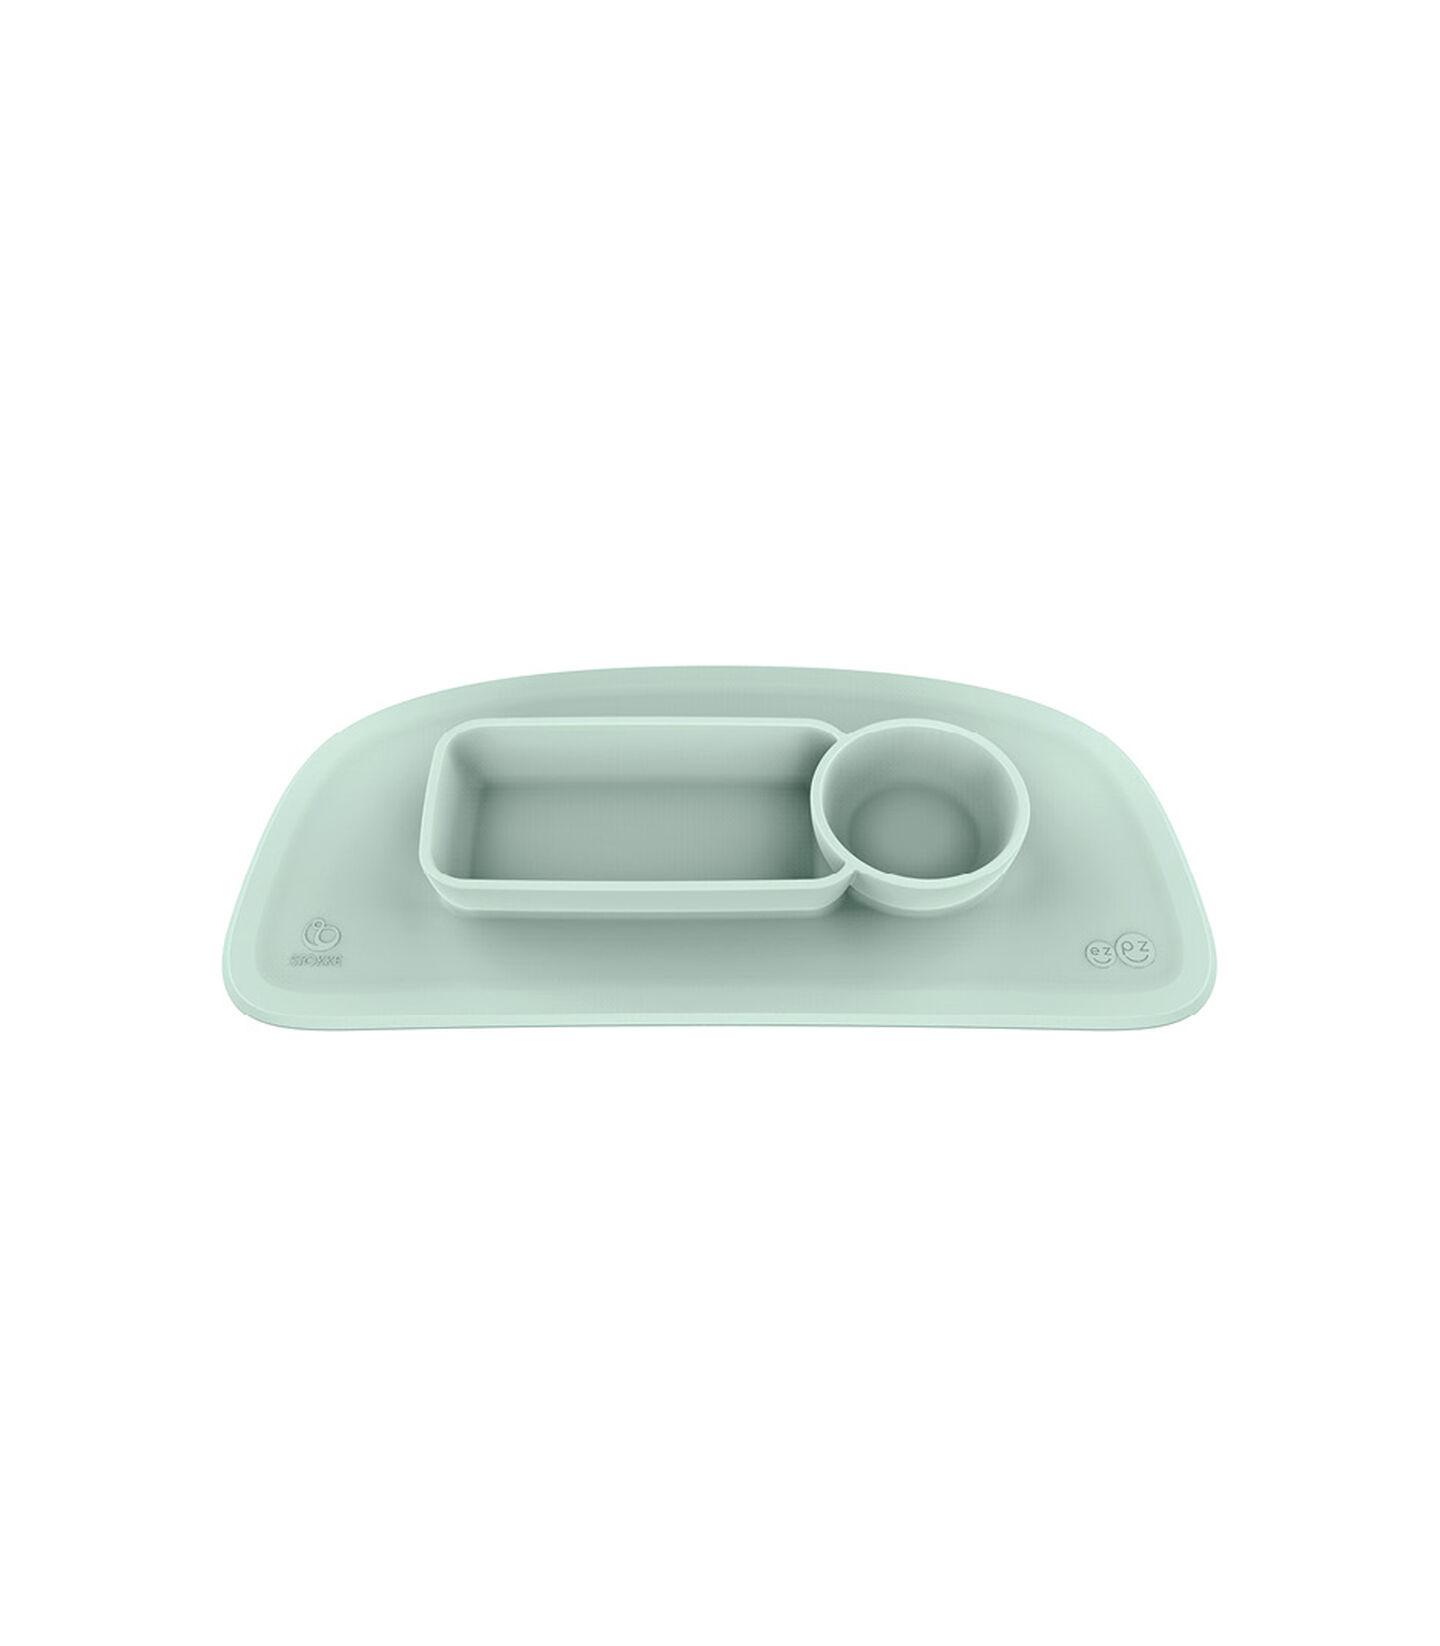 ezpz™ by Stokke™ placemat for Stokke® Tray Soft Mint, Soft Mint, mainview view 2